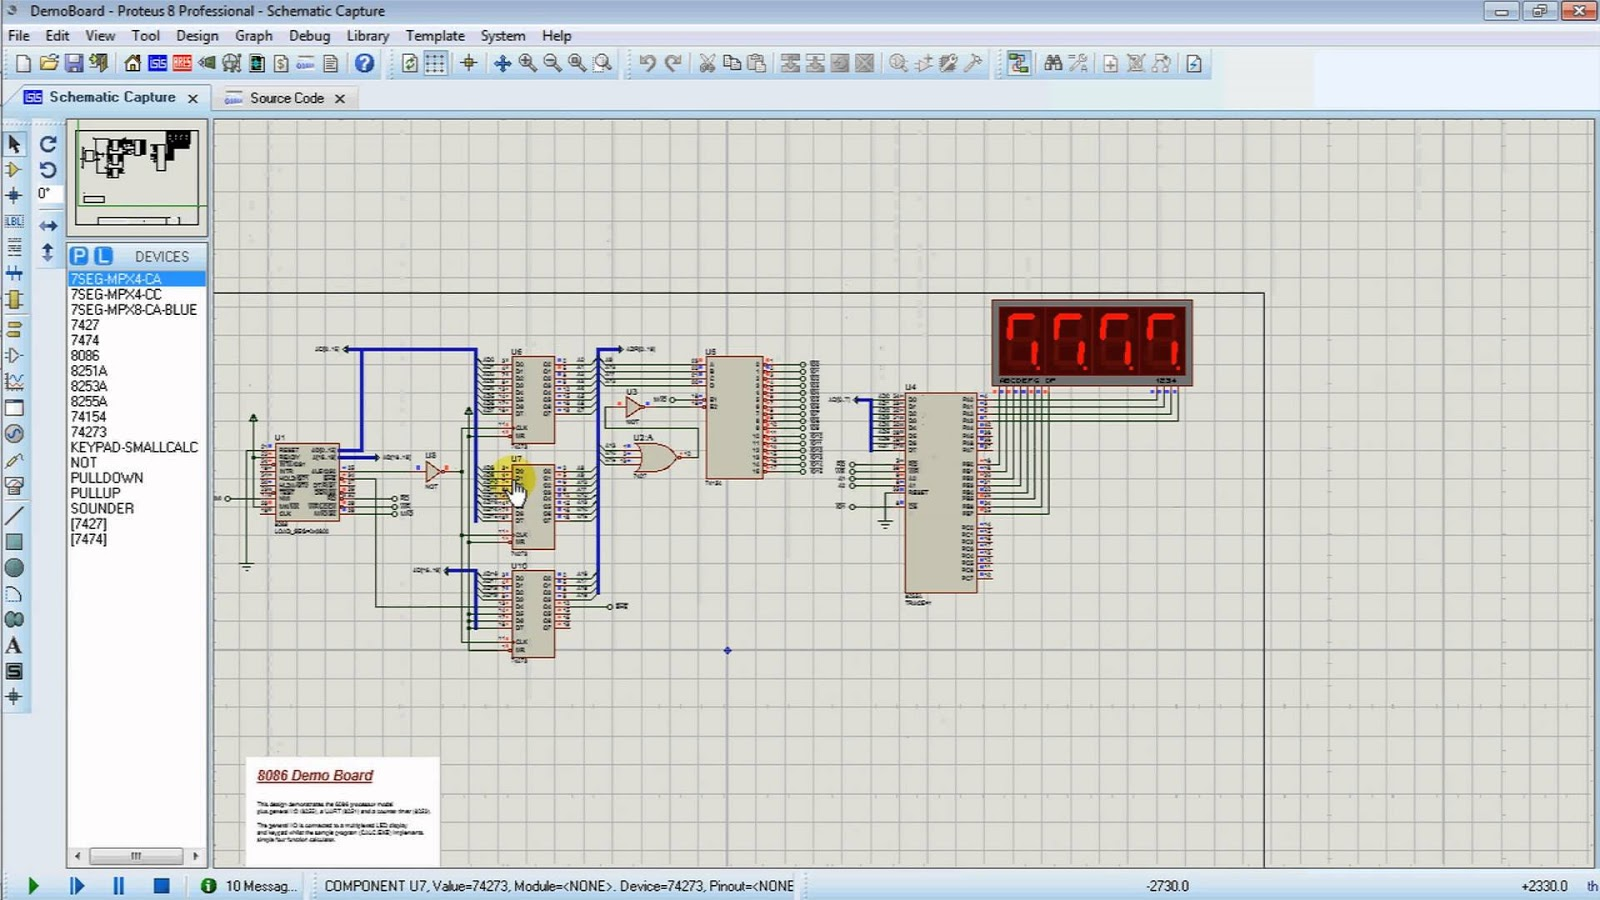 Kumpulan Skema Elektronika Untuk Hoby Download Software Elektro Technical Expresspcb Schematic And Pcb Design New Version From Labcenter Electronics Proteus Combines Powerful Features With Ease Of Use To Help Engineers Test Lay Out Professional Pcbs